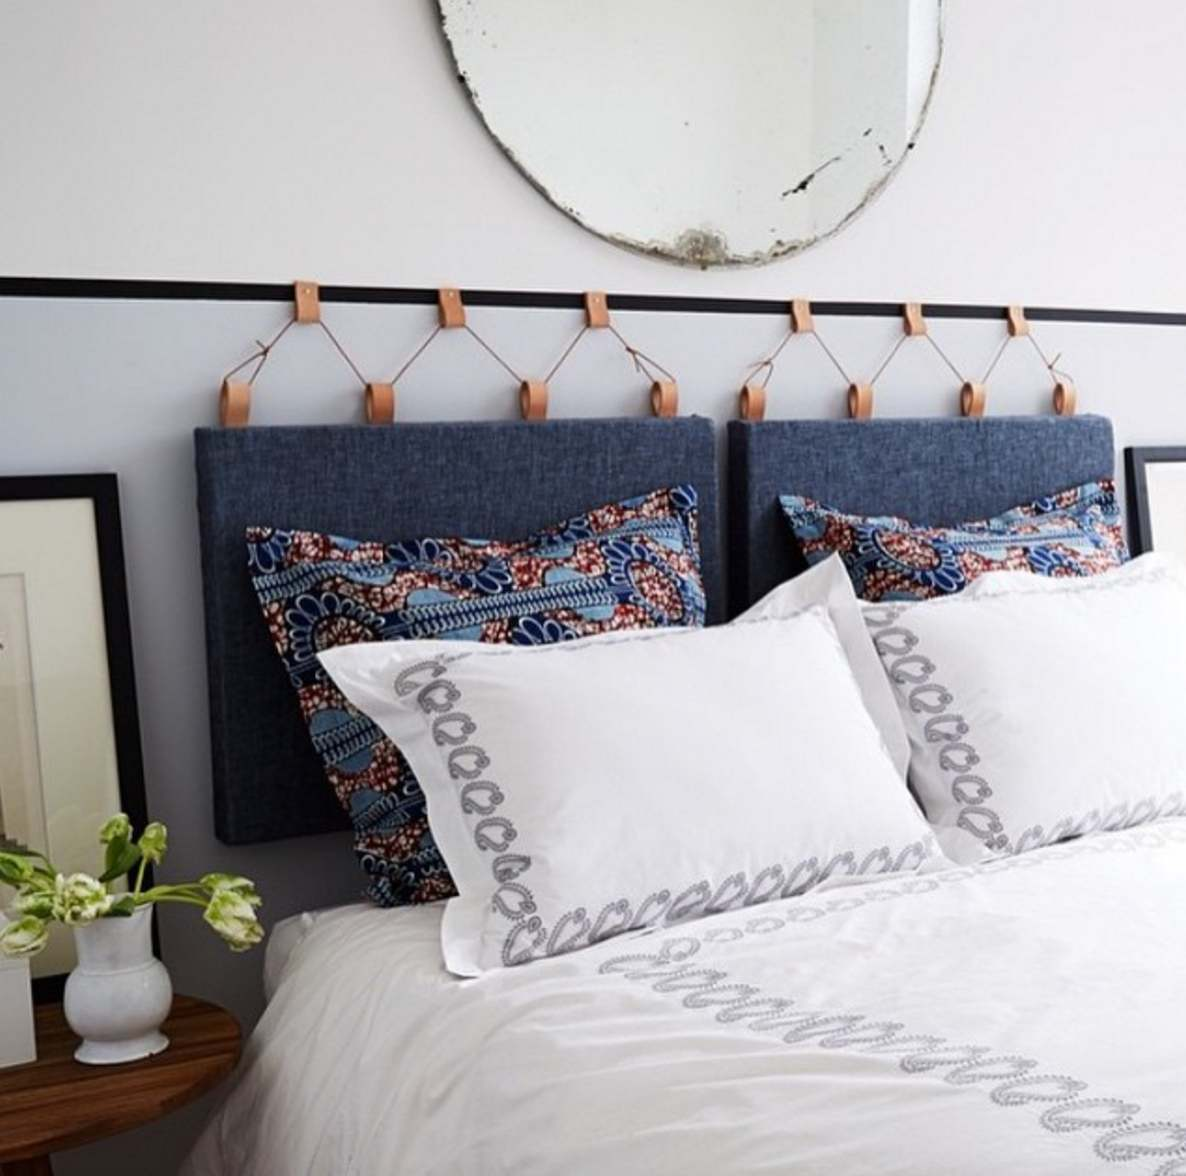 25 Stylish Headboard Alternatives That Will Transform Your